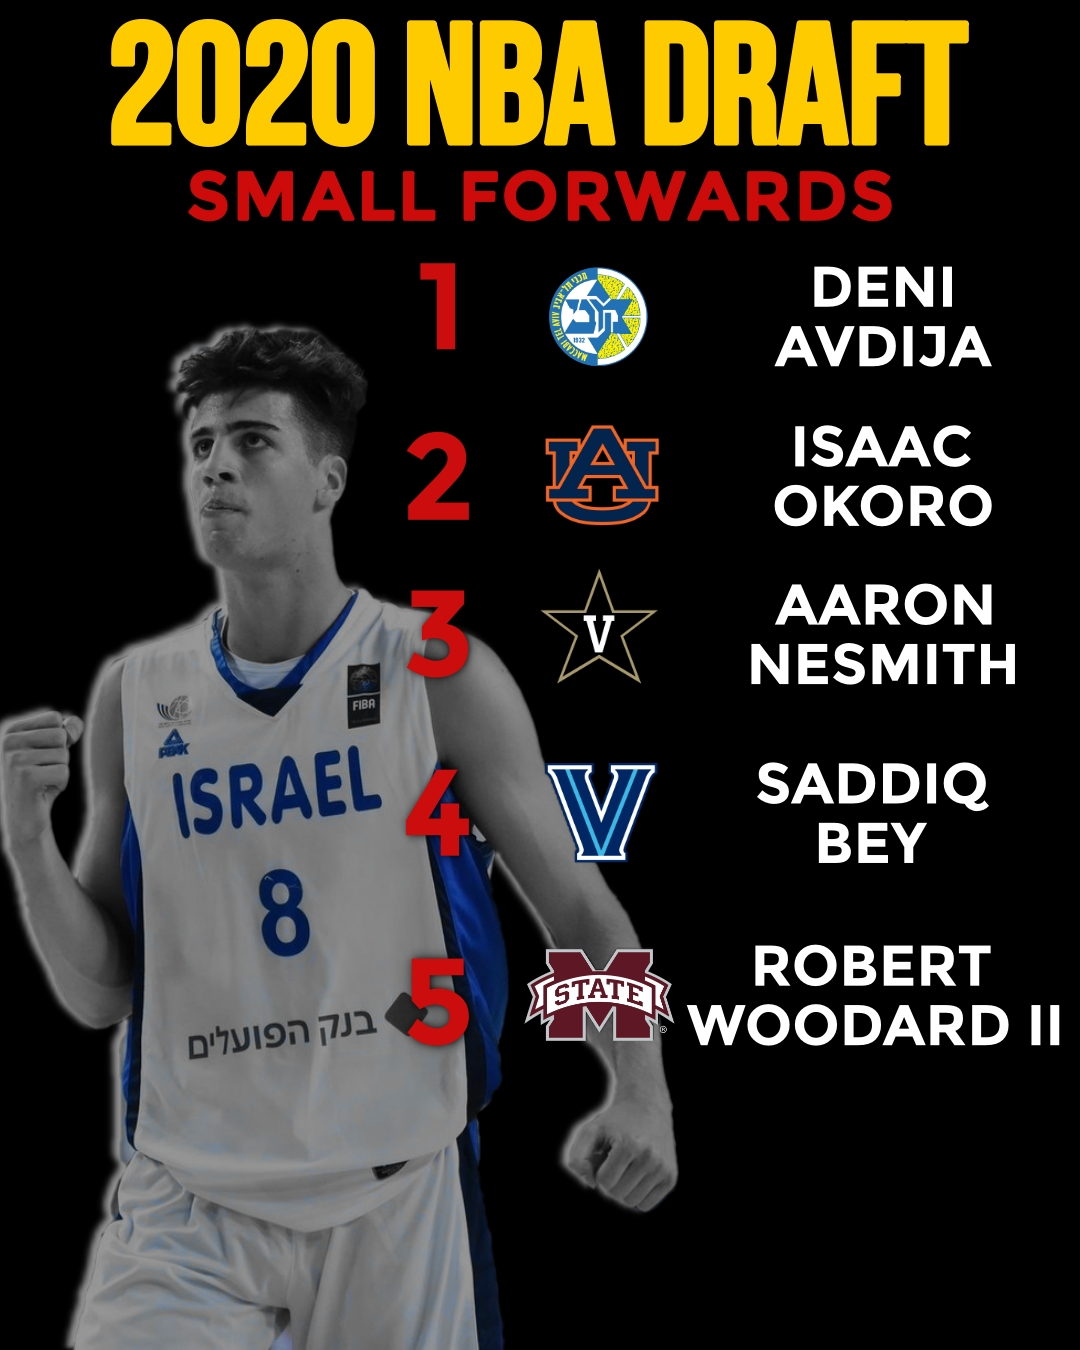 Top 5 Small Forwards